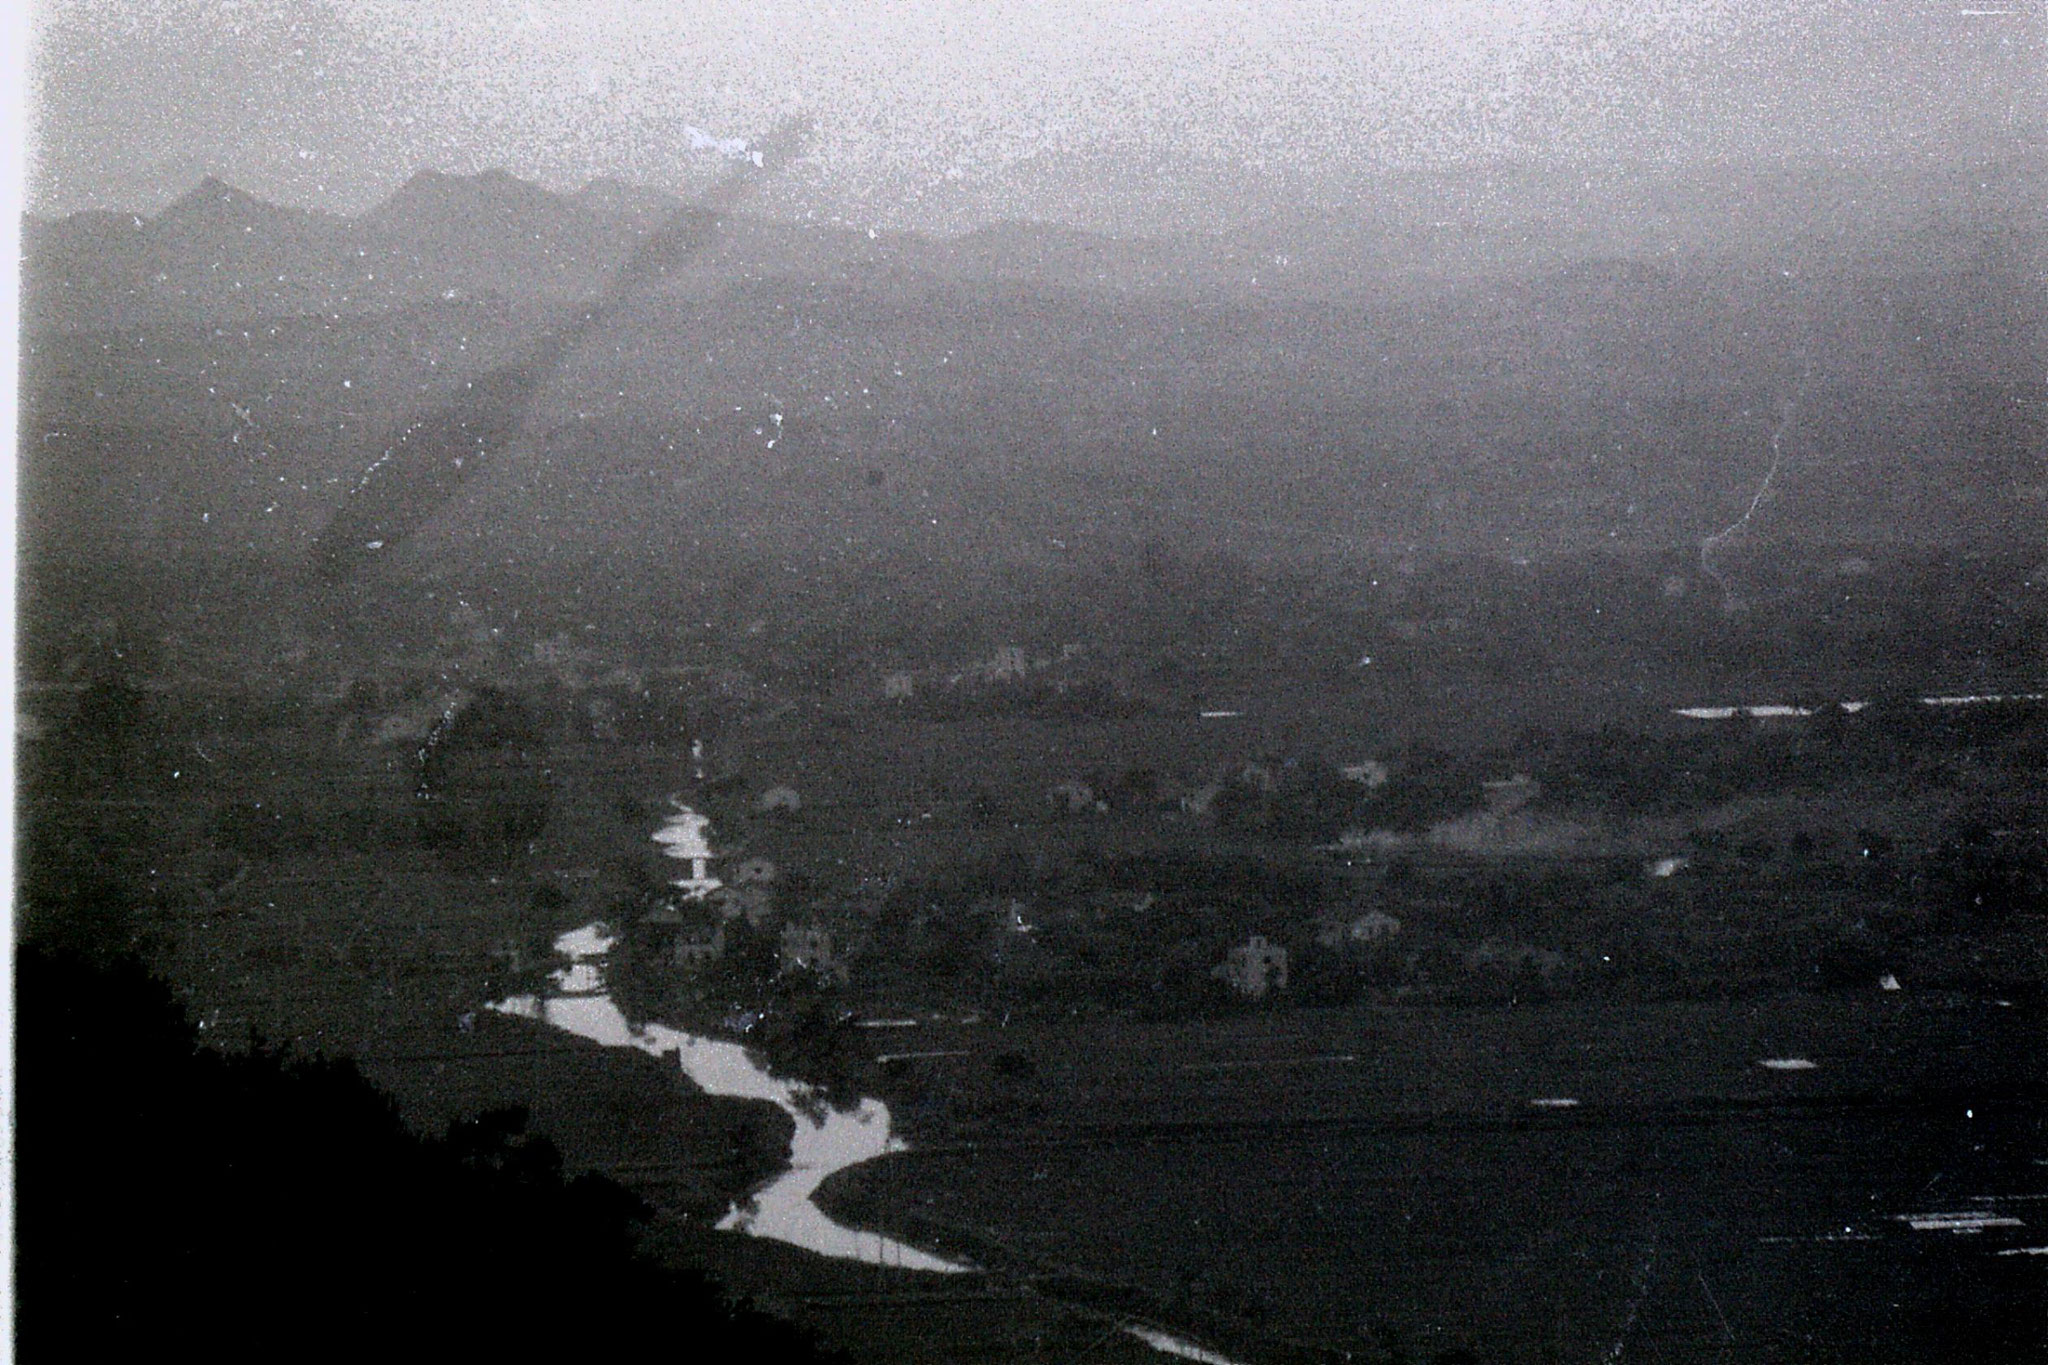 13/6/1989: 17: from Lao He hill - Yan Shan river